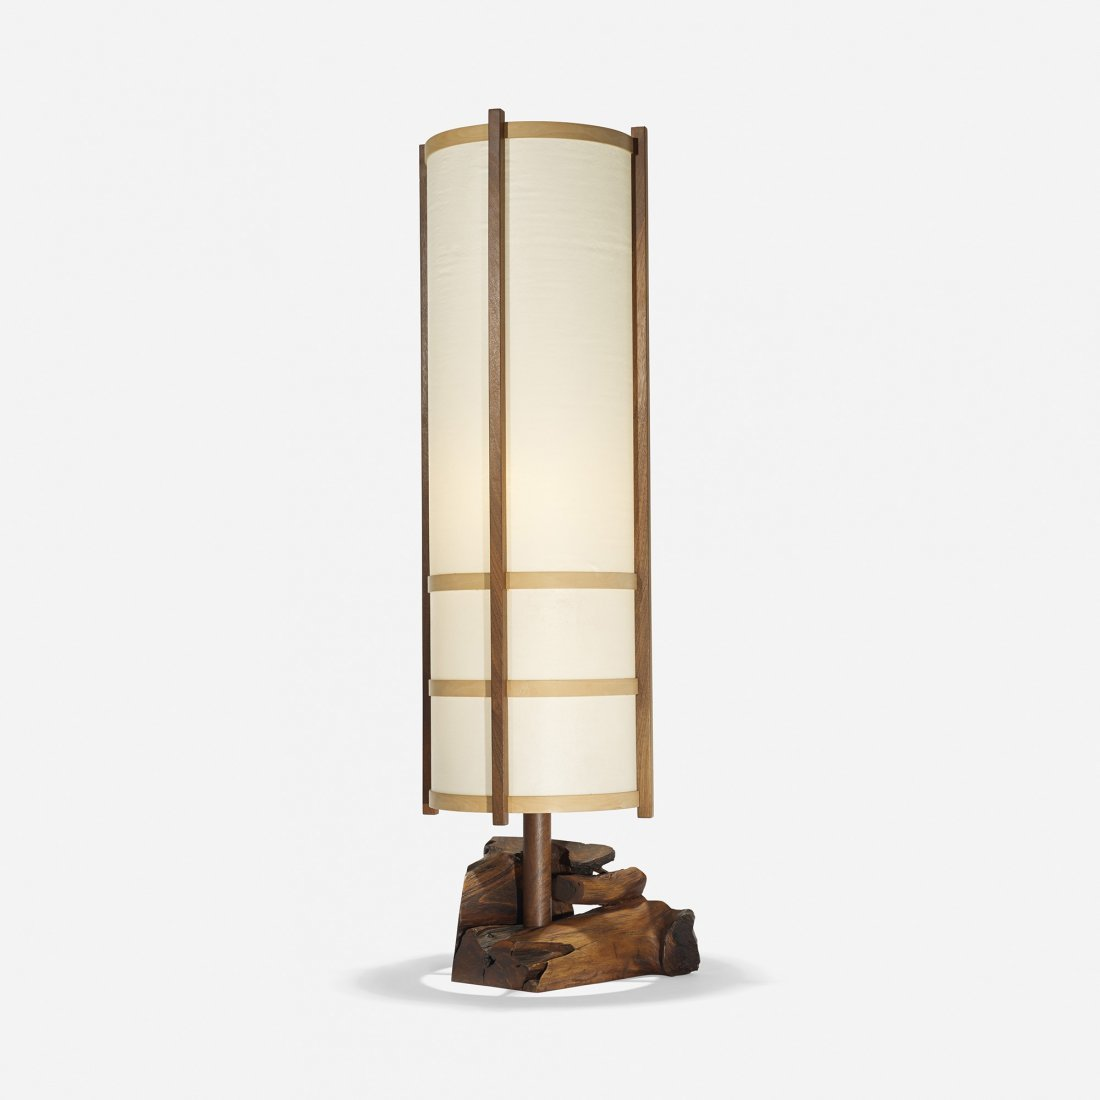 George Nakashima Kent Hall floor lamp